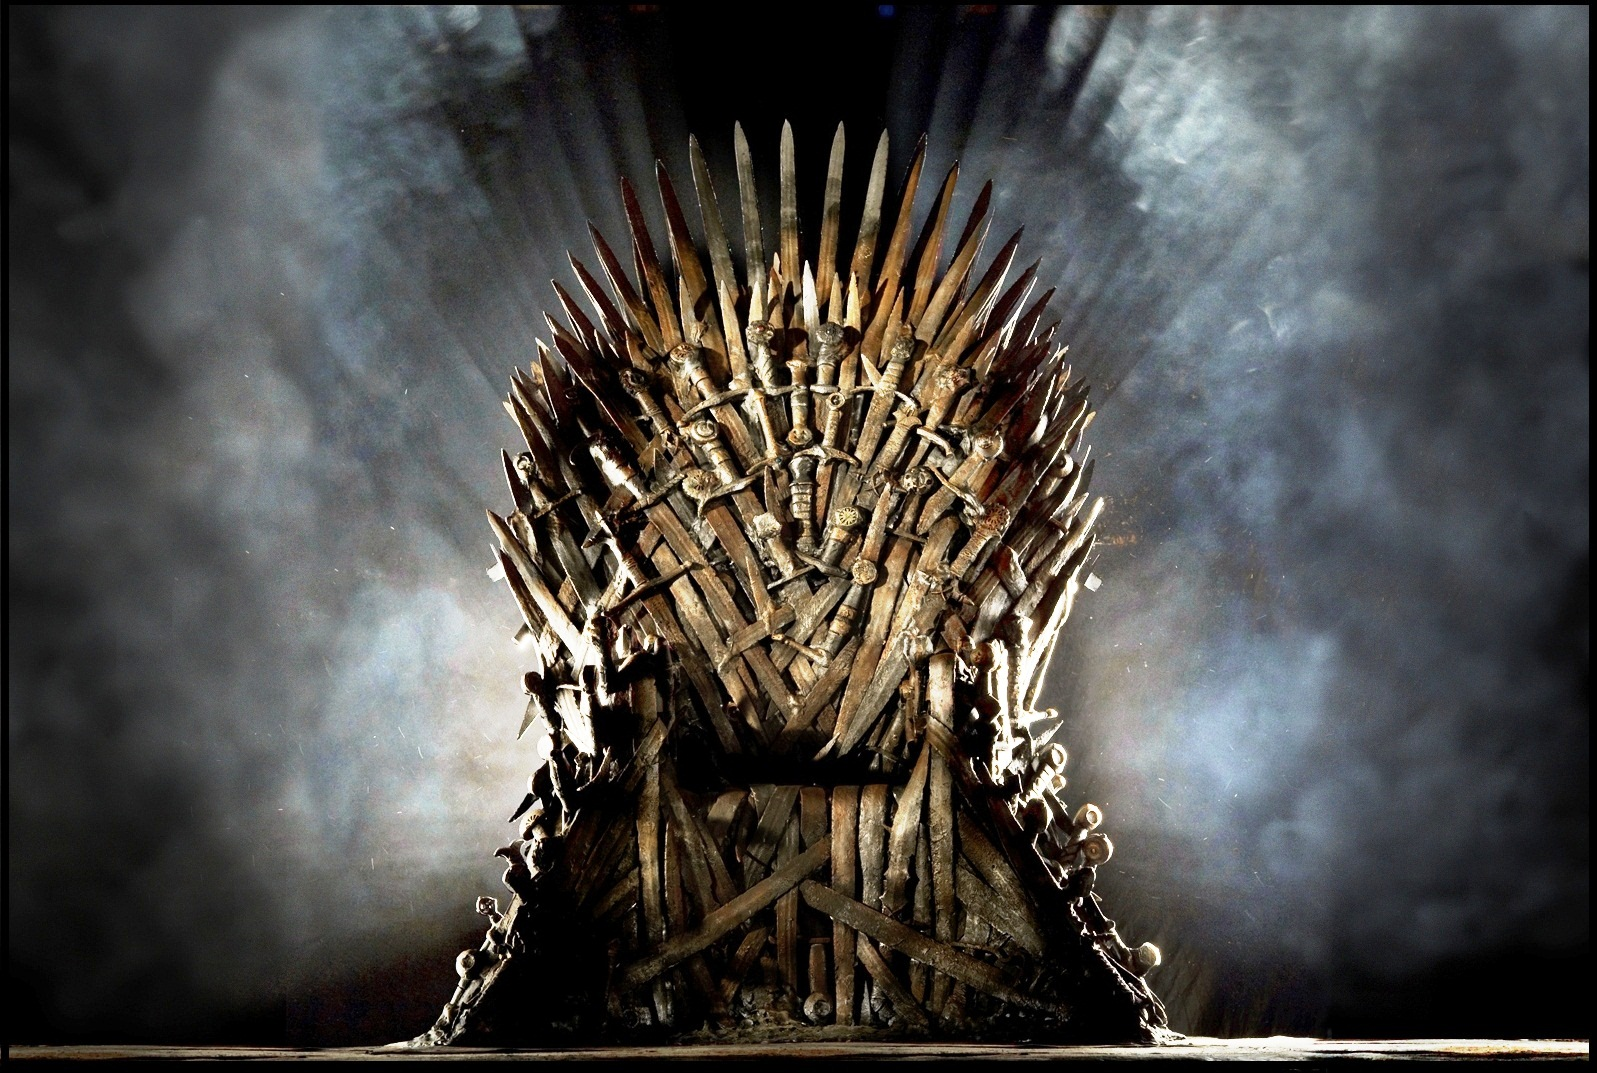 Quanto Medioevo c'è in Game of Thrones?